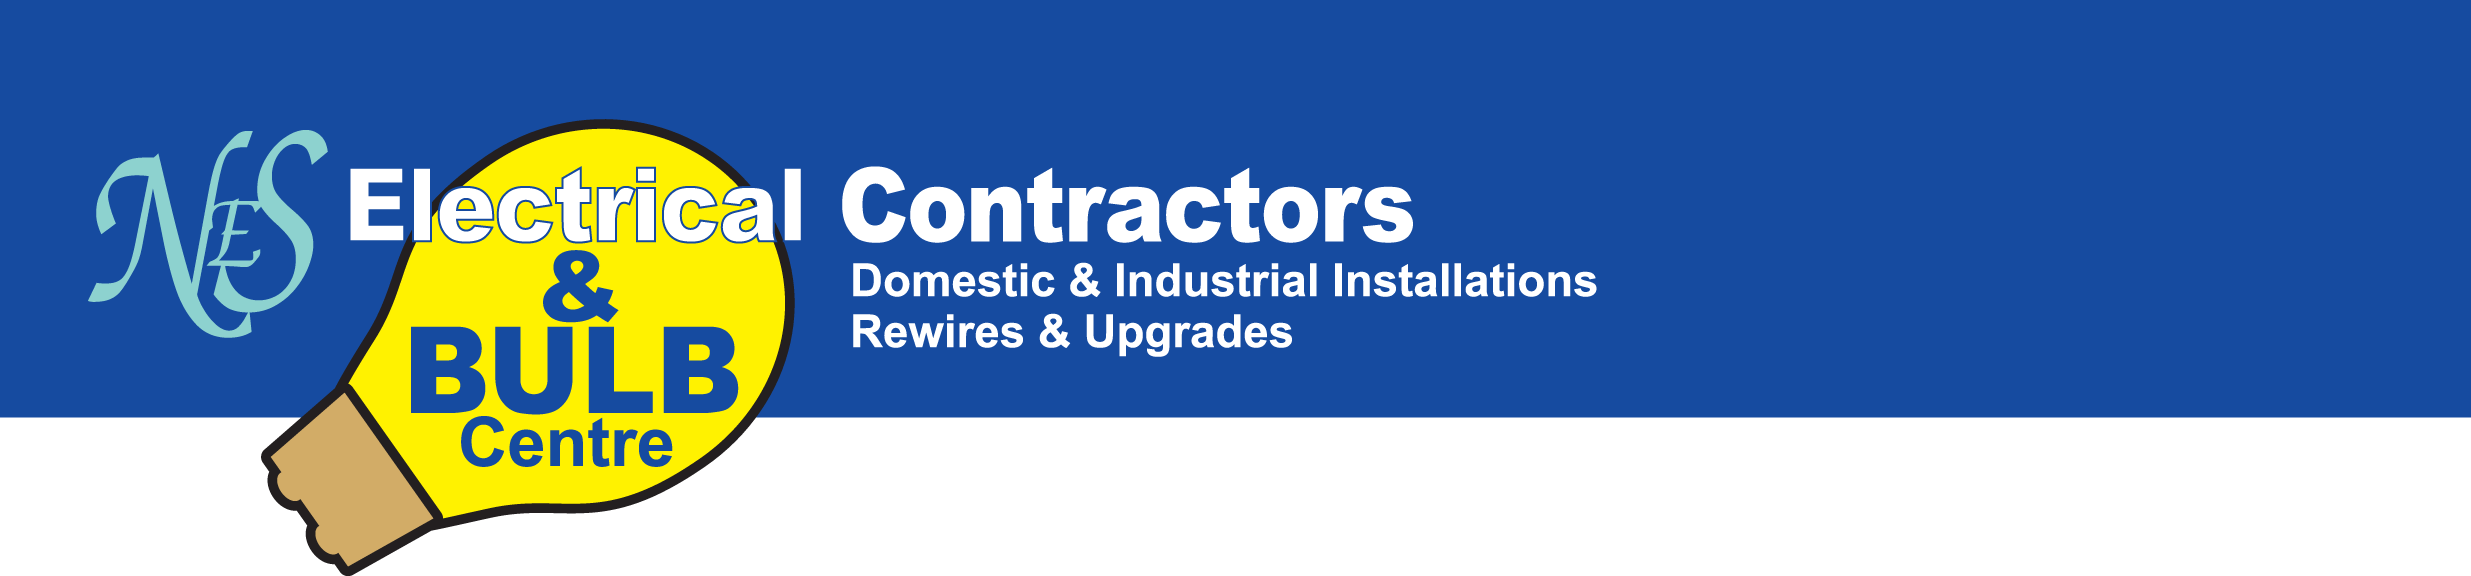 NES Electrical Contractors and Shop, Fakenham, Norfolk